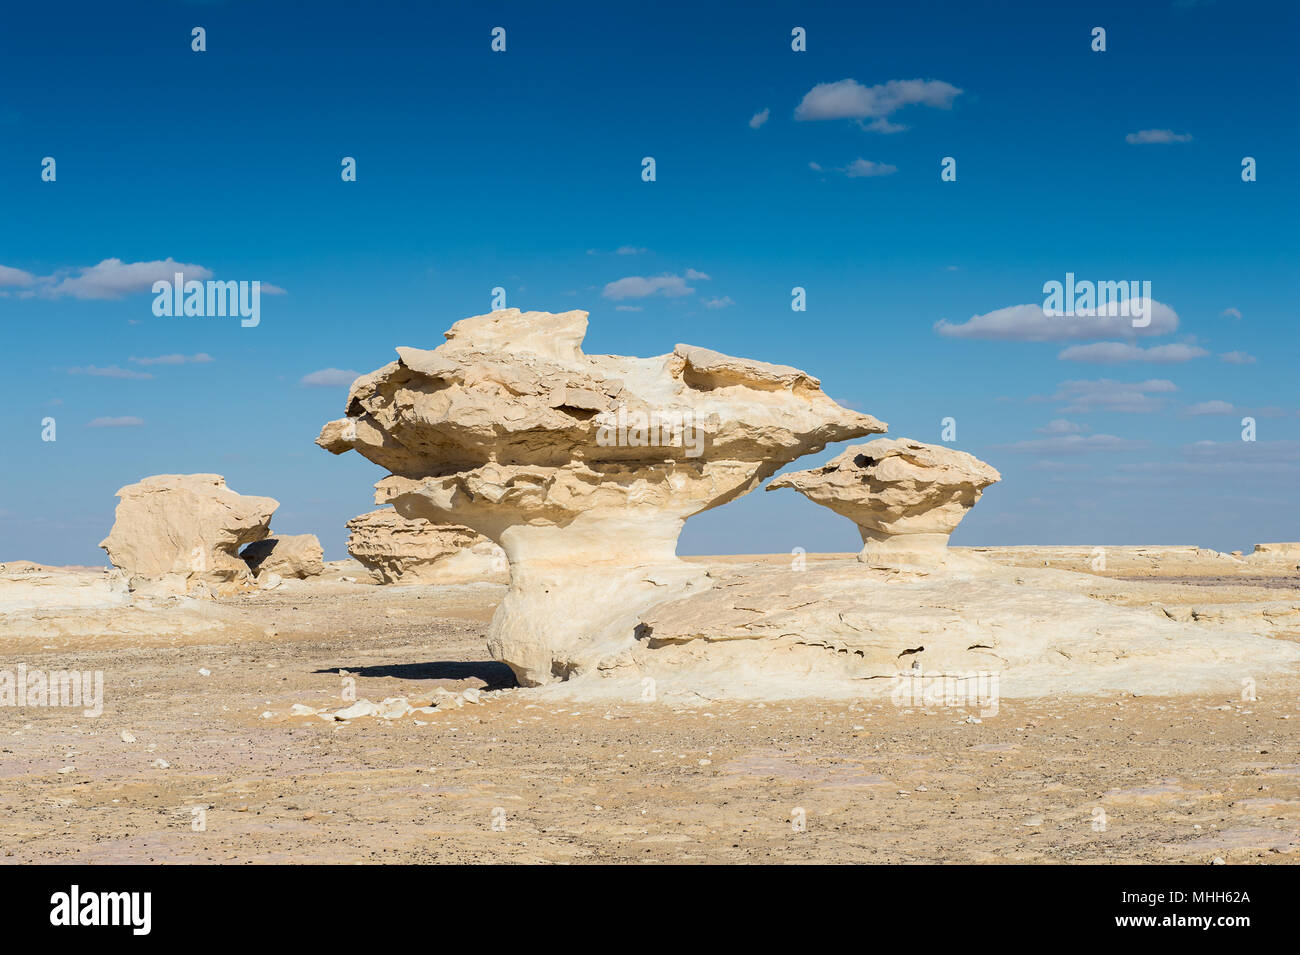 Mushroom rock formations at the Western White Desert of Egypt - Stock Image